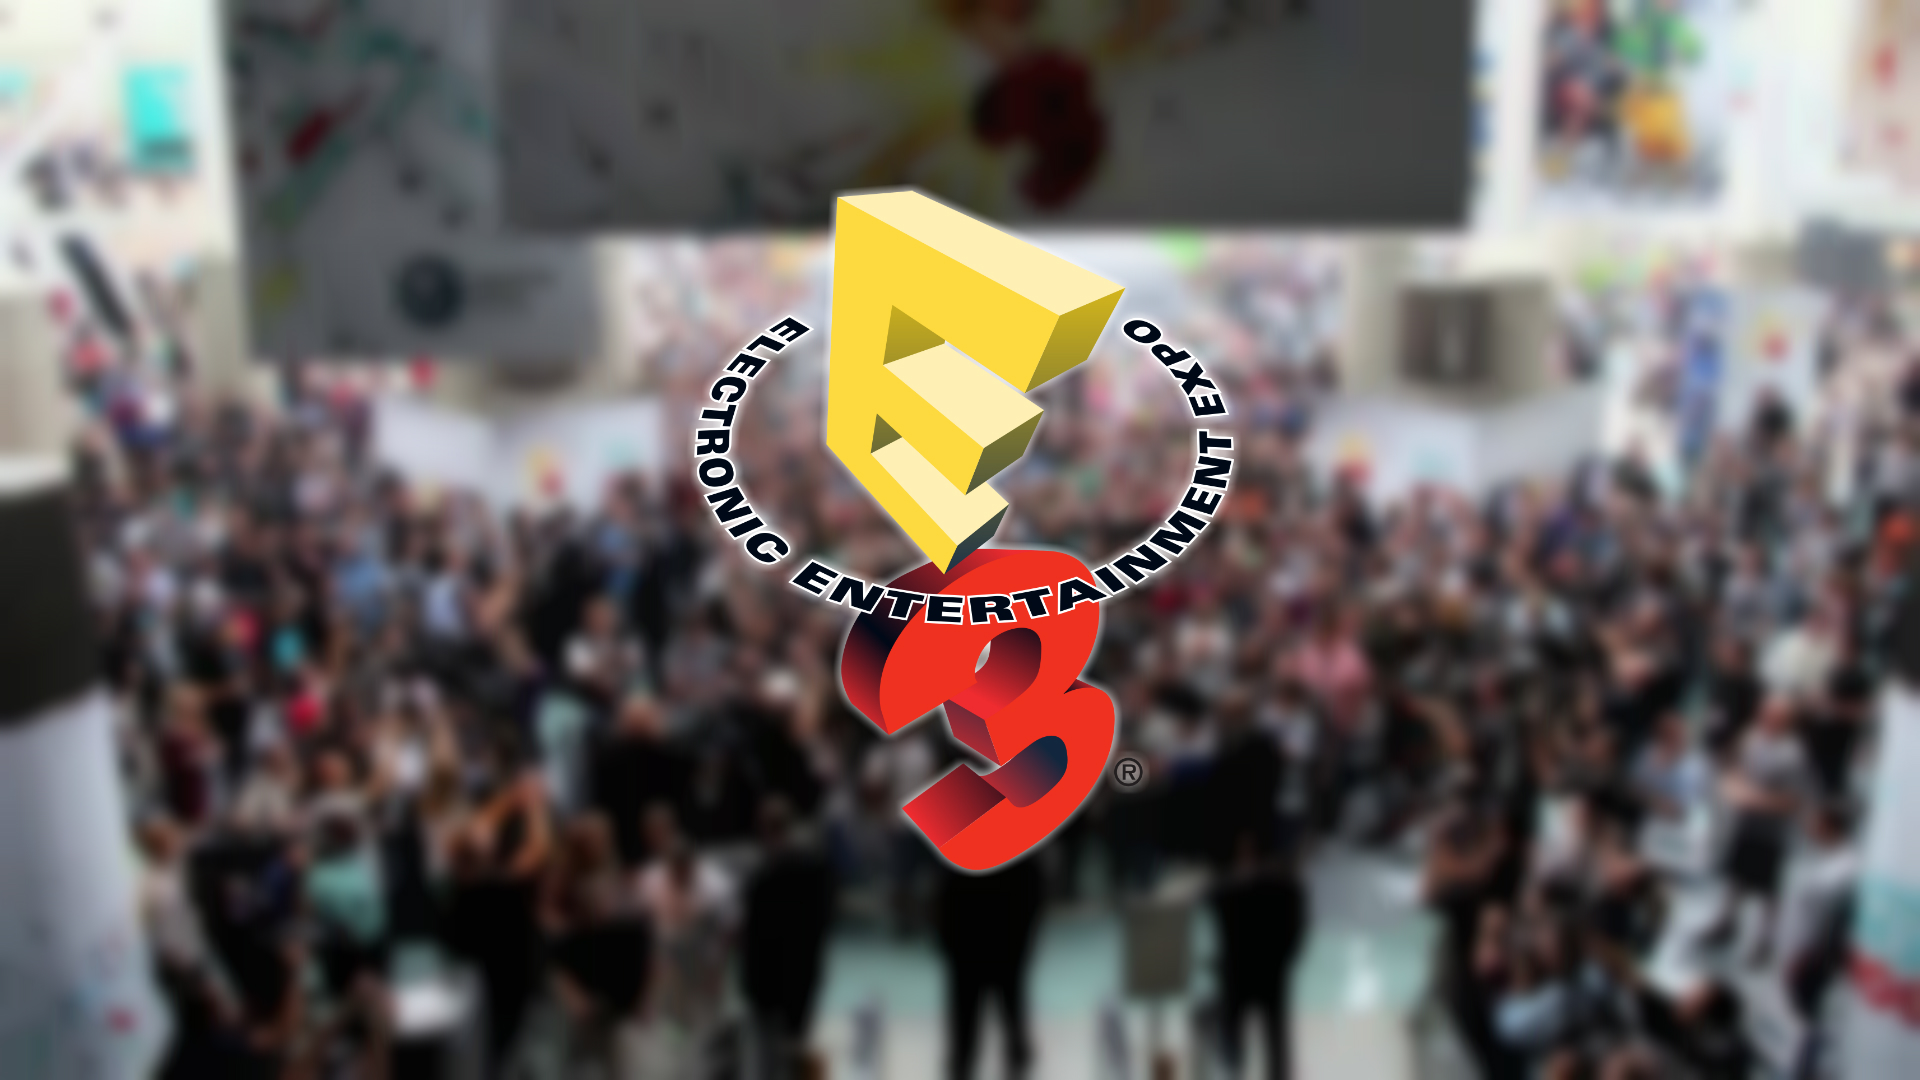 Top E3 Games Coming Out In 2017